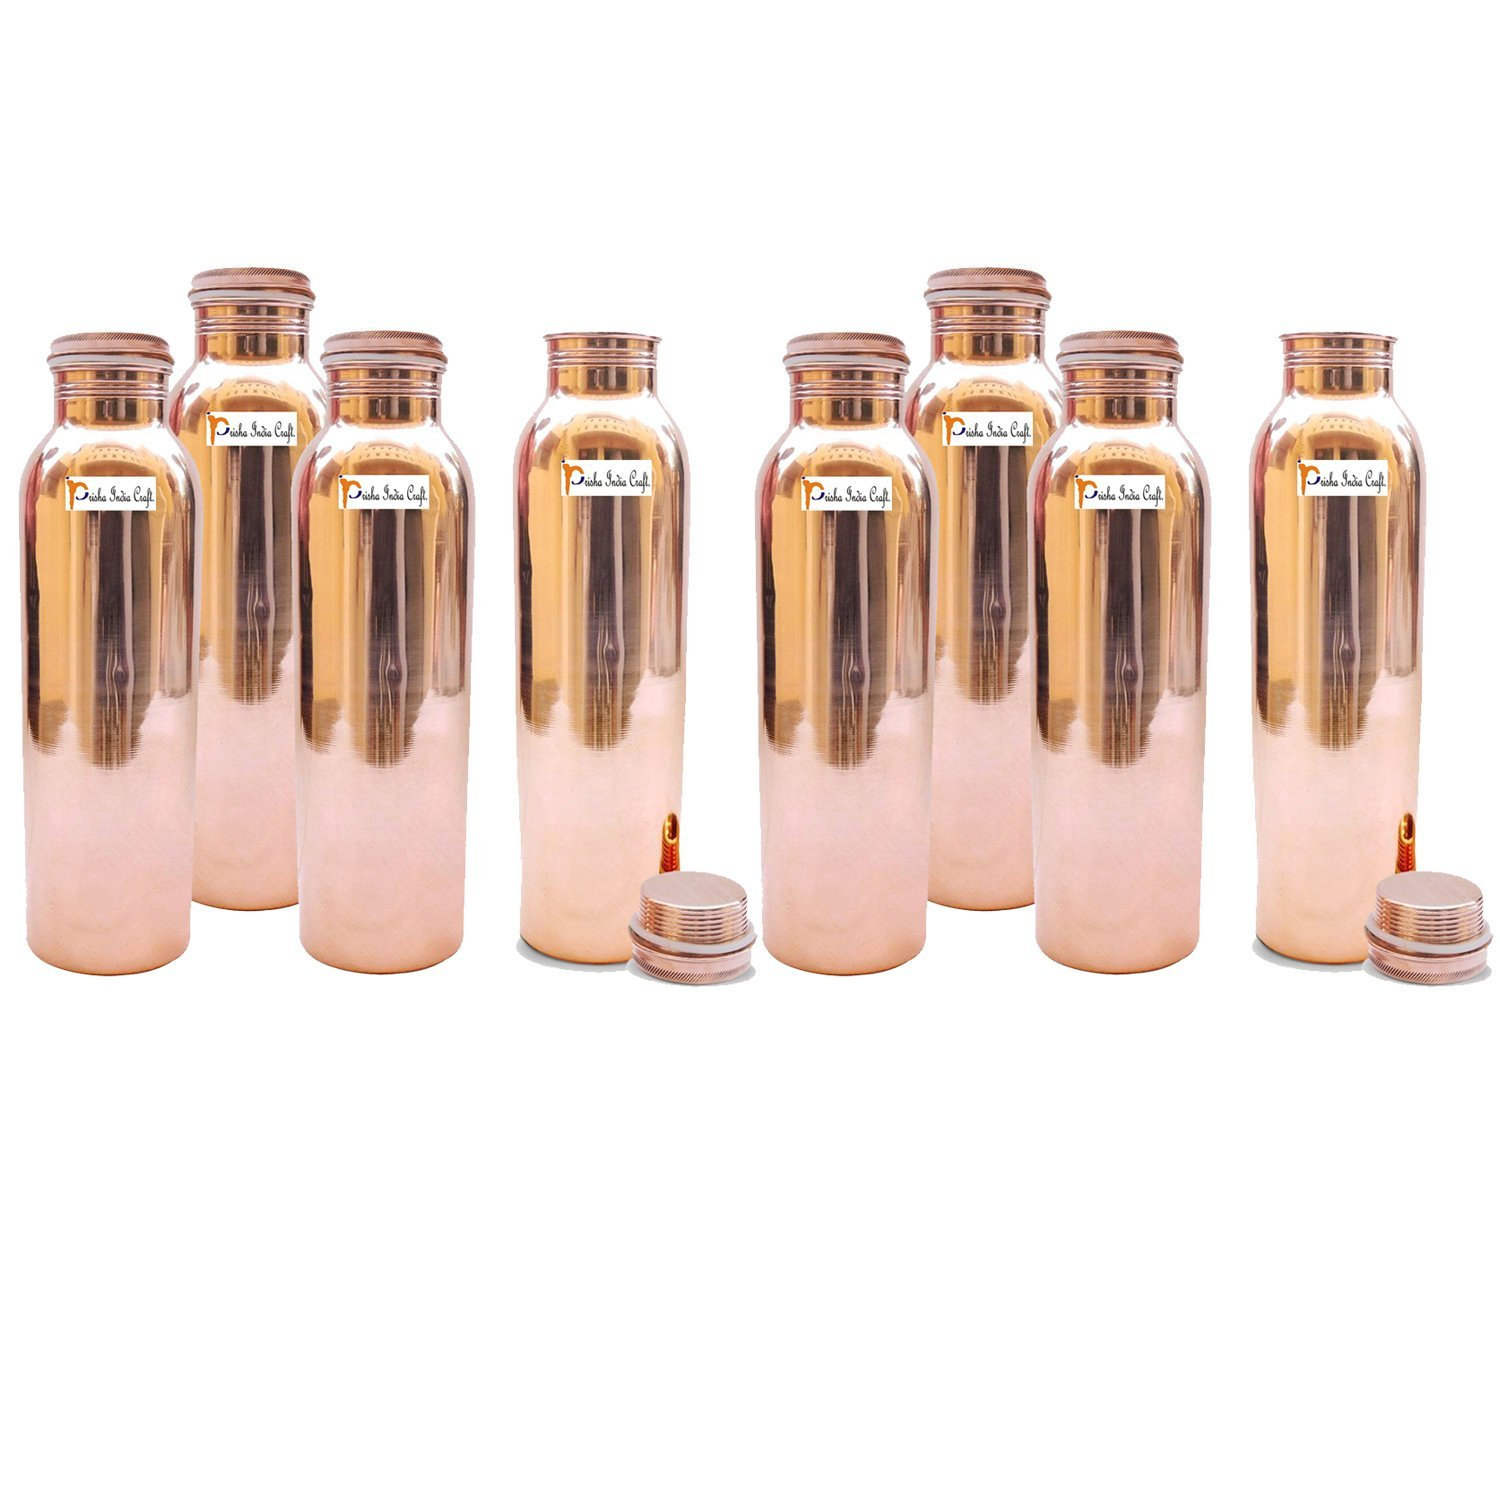 1150ml / 38.89oz - Set of 8 - Prisha India Craft Pure Copper Water Bottle for Health Benefits - Water Bottles Joint Free, Handmade - Christmas Gift